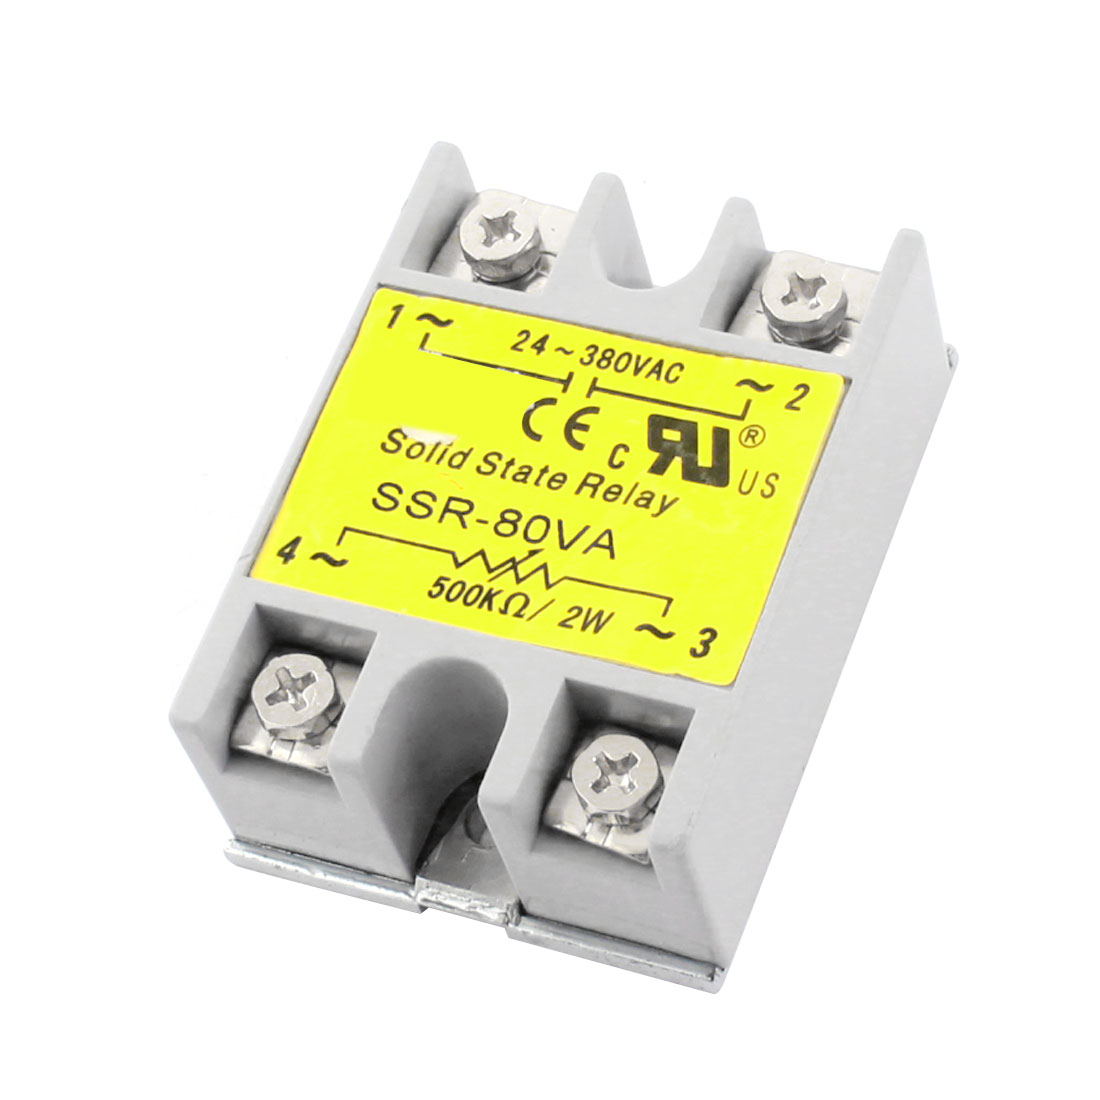 SSR-80VA AC24-380V Output 500K Ohm/2W Input Metal Base Single Phase Resistance Type Adjustable Solid State Relay